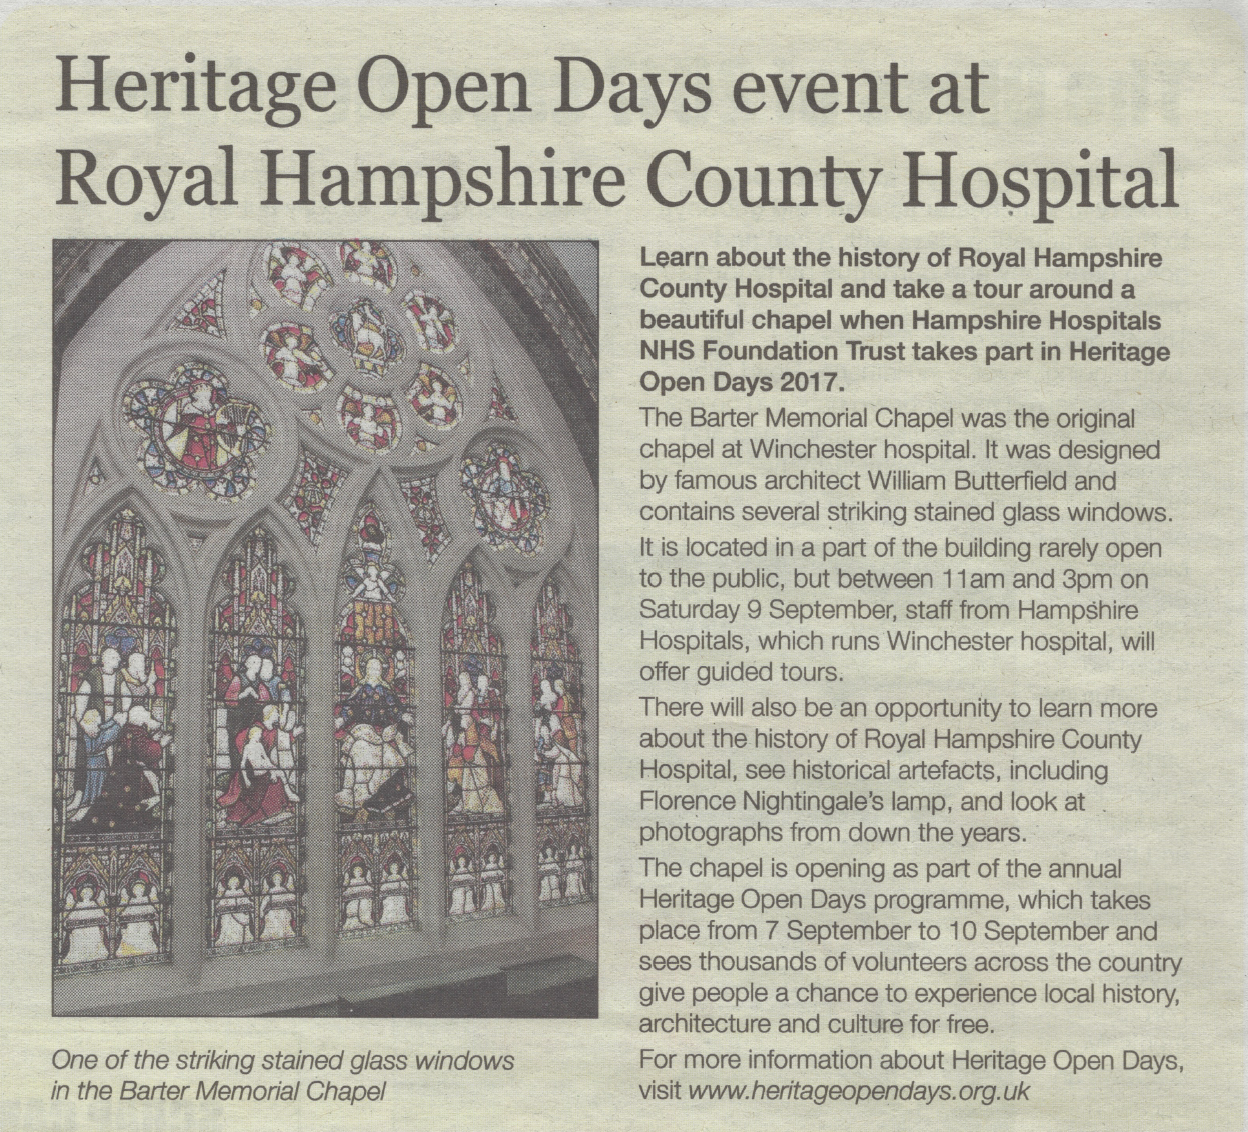 Mid Hants Observer feature from 30th August 2017